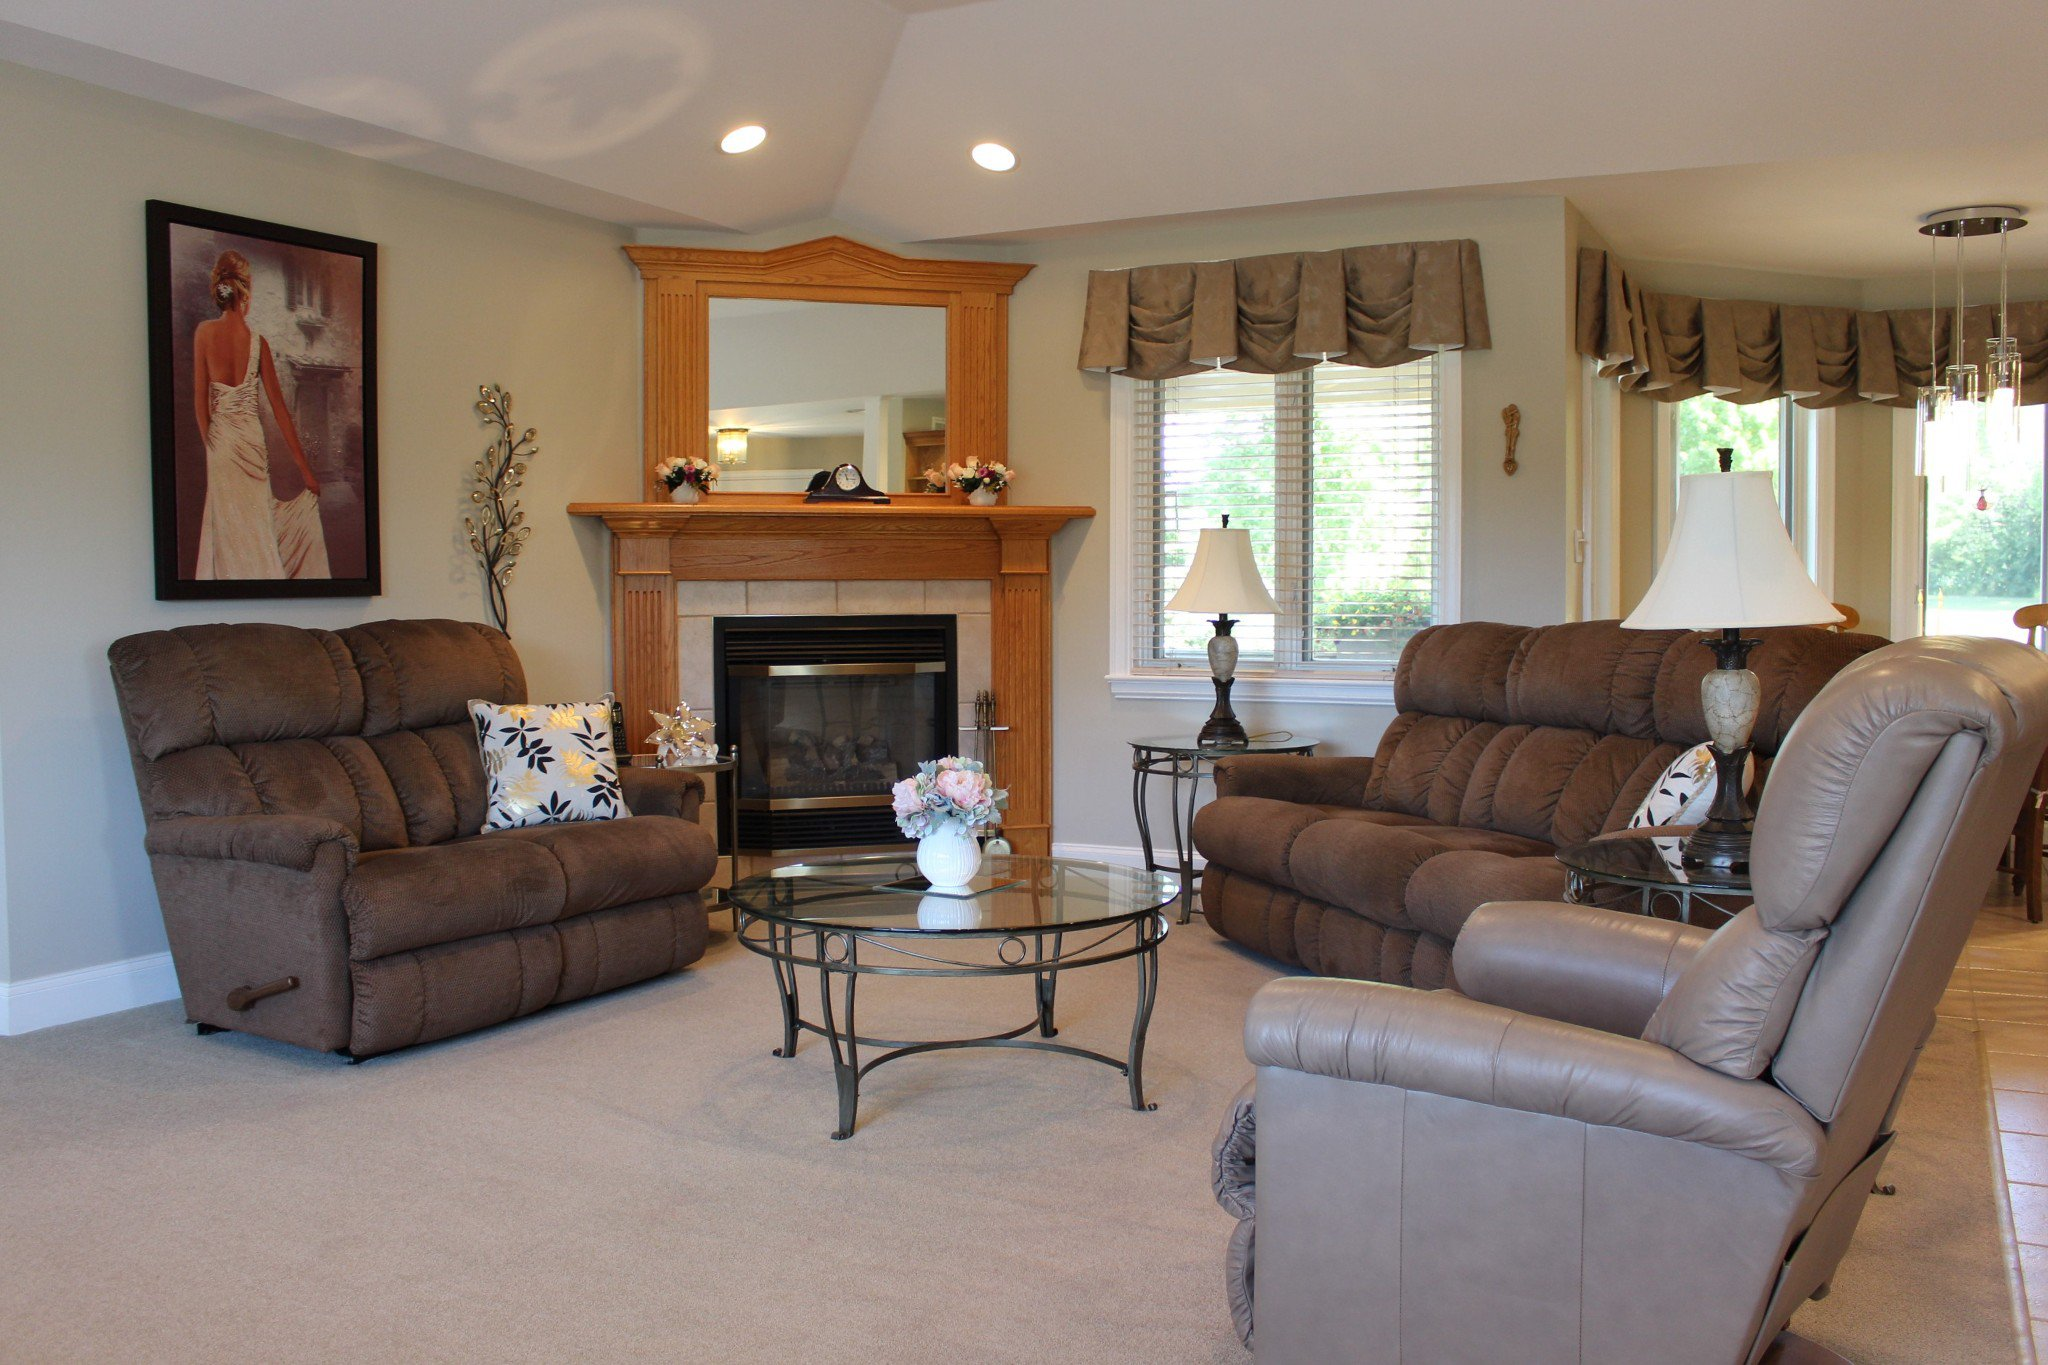 Photo 8: Photos: 159 Nawautin Drive in Grafton: Residential Detached for sale : MLS®# 40012652